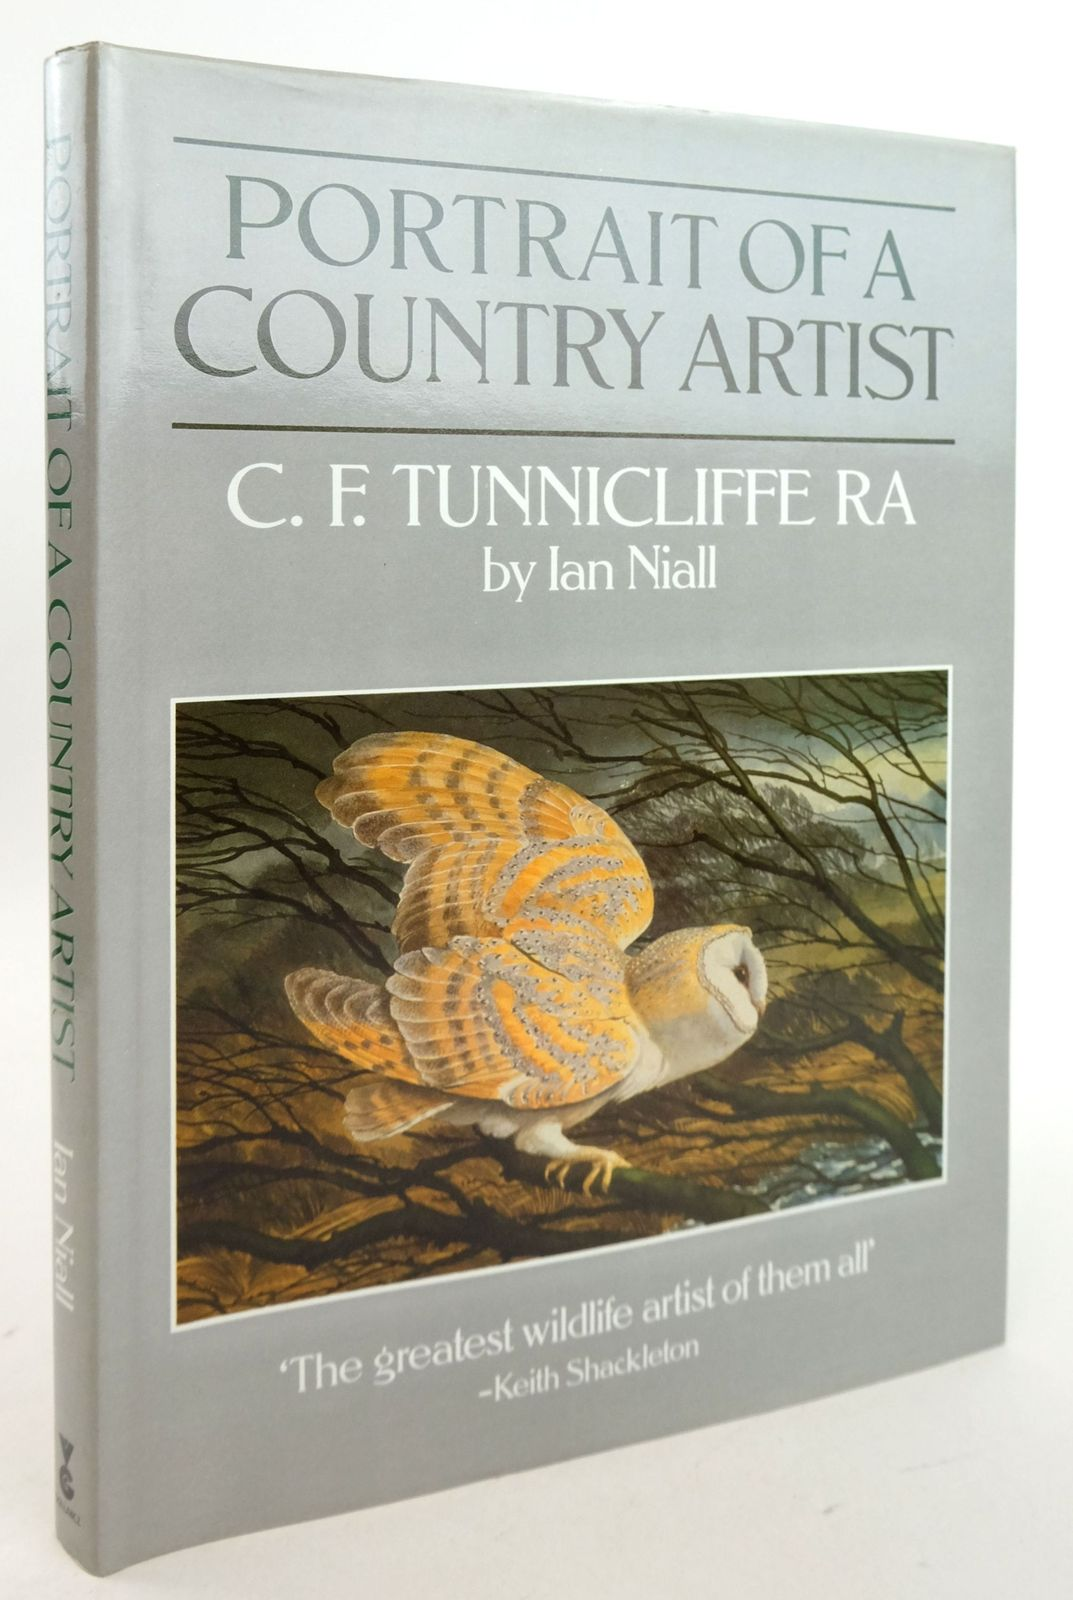 Photo of PORTRAIT OF A COUNTRY ARTIST: C.F. TUNNICLIFFE R.A. 1901-1979 written by Niall, Ian illustrated by Tunnicliffe, C.F. published by Victor Gollancz (STOCK CODE: 1819925)  for sale by Stella & Rose's Books